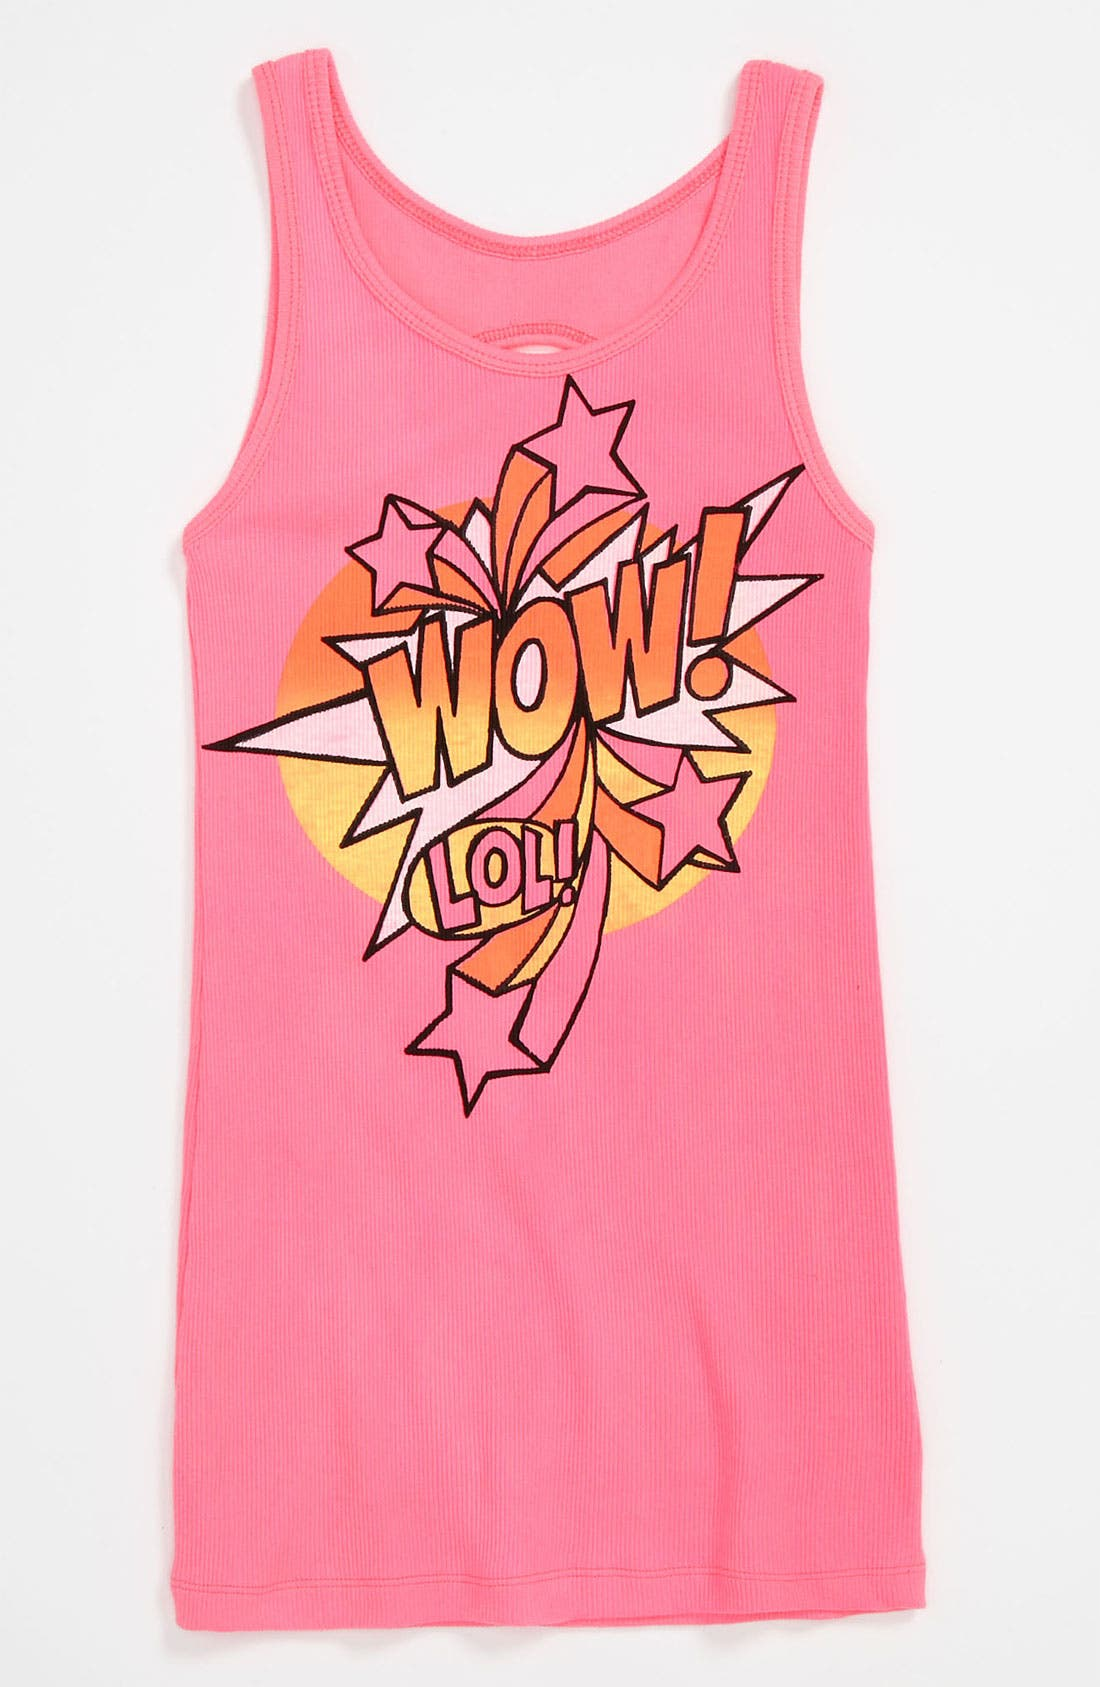 Main Image - Flowers by Zoe 'Wow' Tank Top (Big Girls)